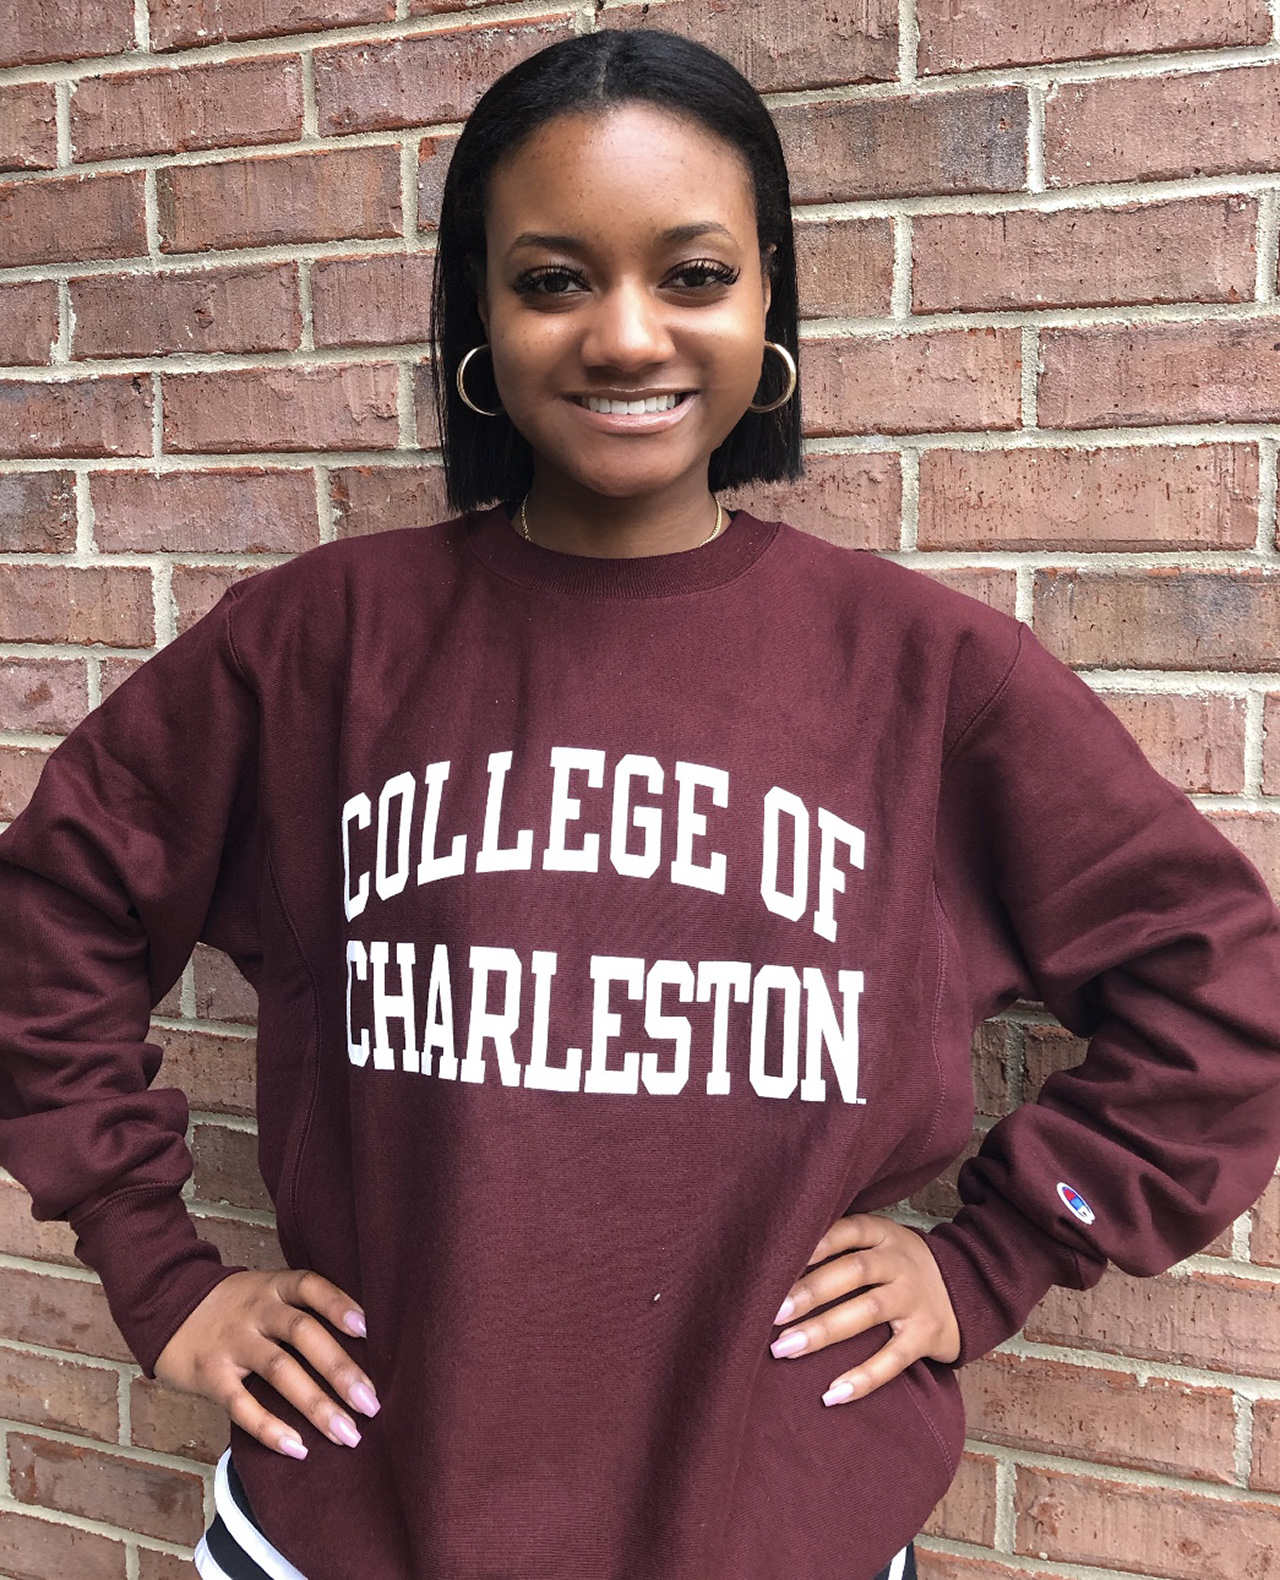 Braelyn Diamond, Hometown: Blythewood, SC, Communication Major, Future Plans: I hope to move to New York City and pursue a career in brand management or journalism. Photo provided.